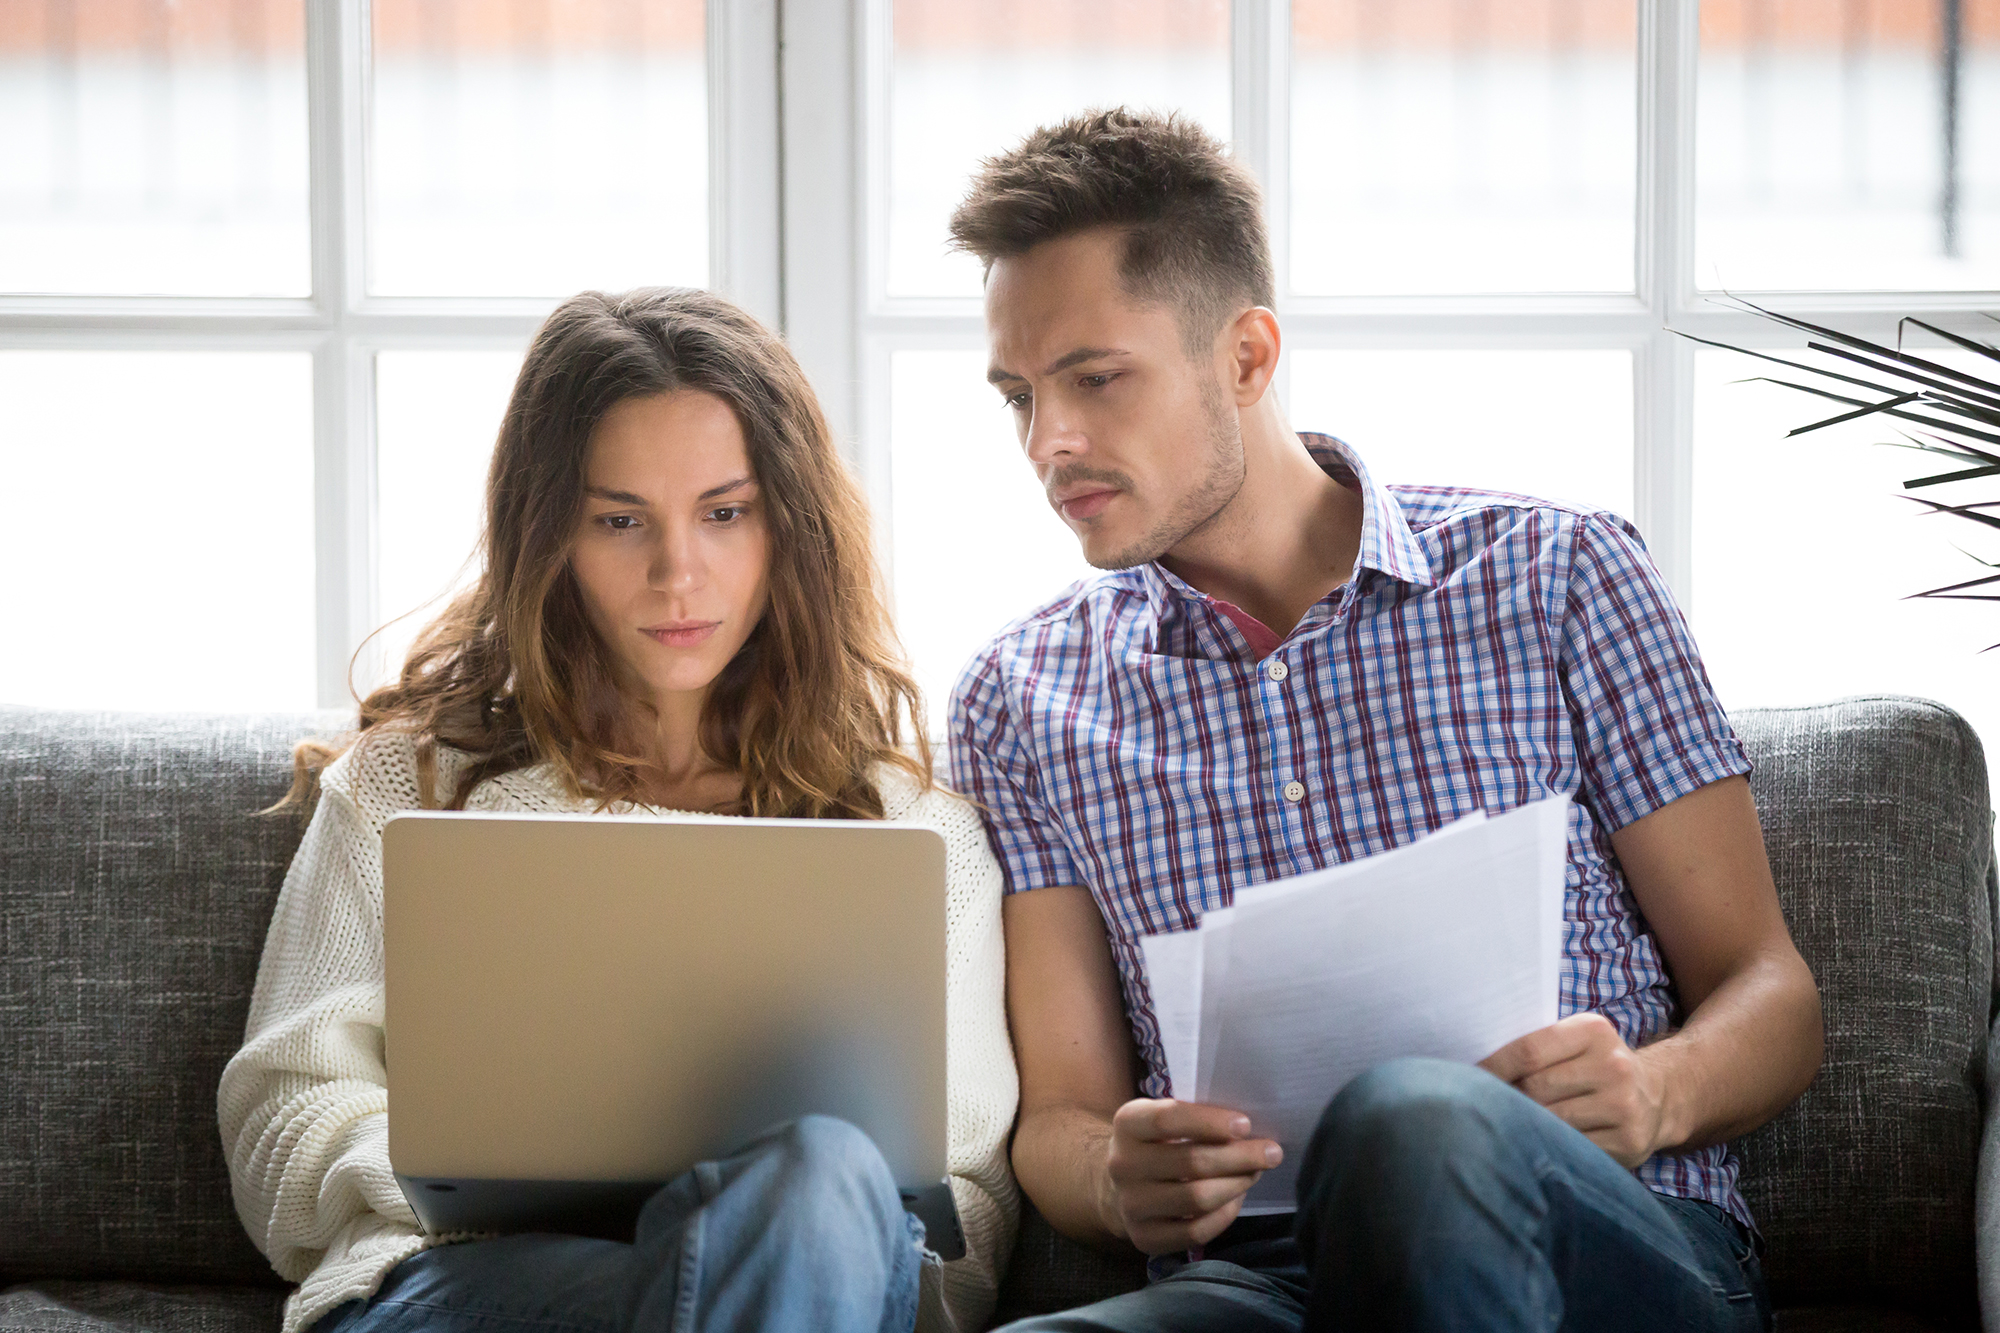 A couple checking an insurance policy. (Image: Shutterstock)